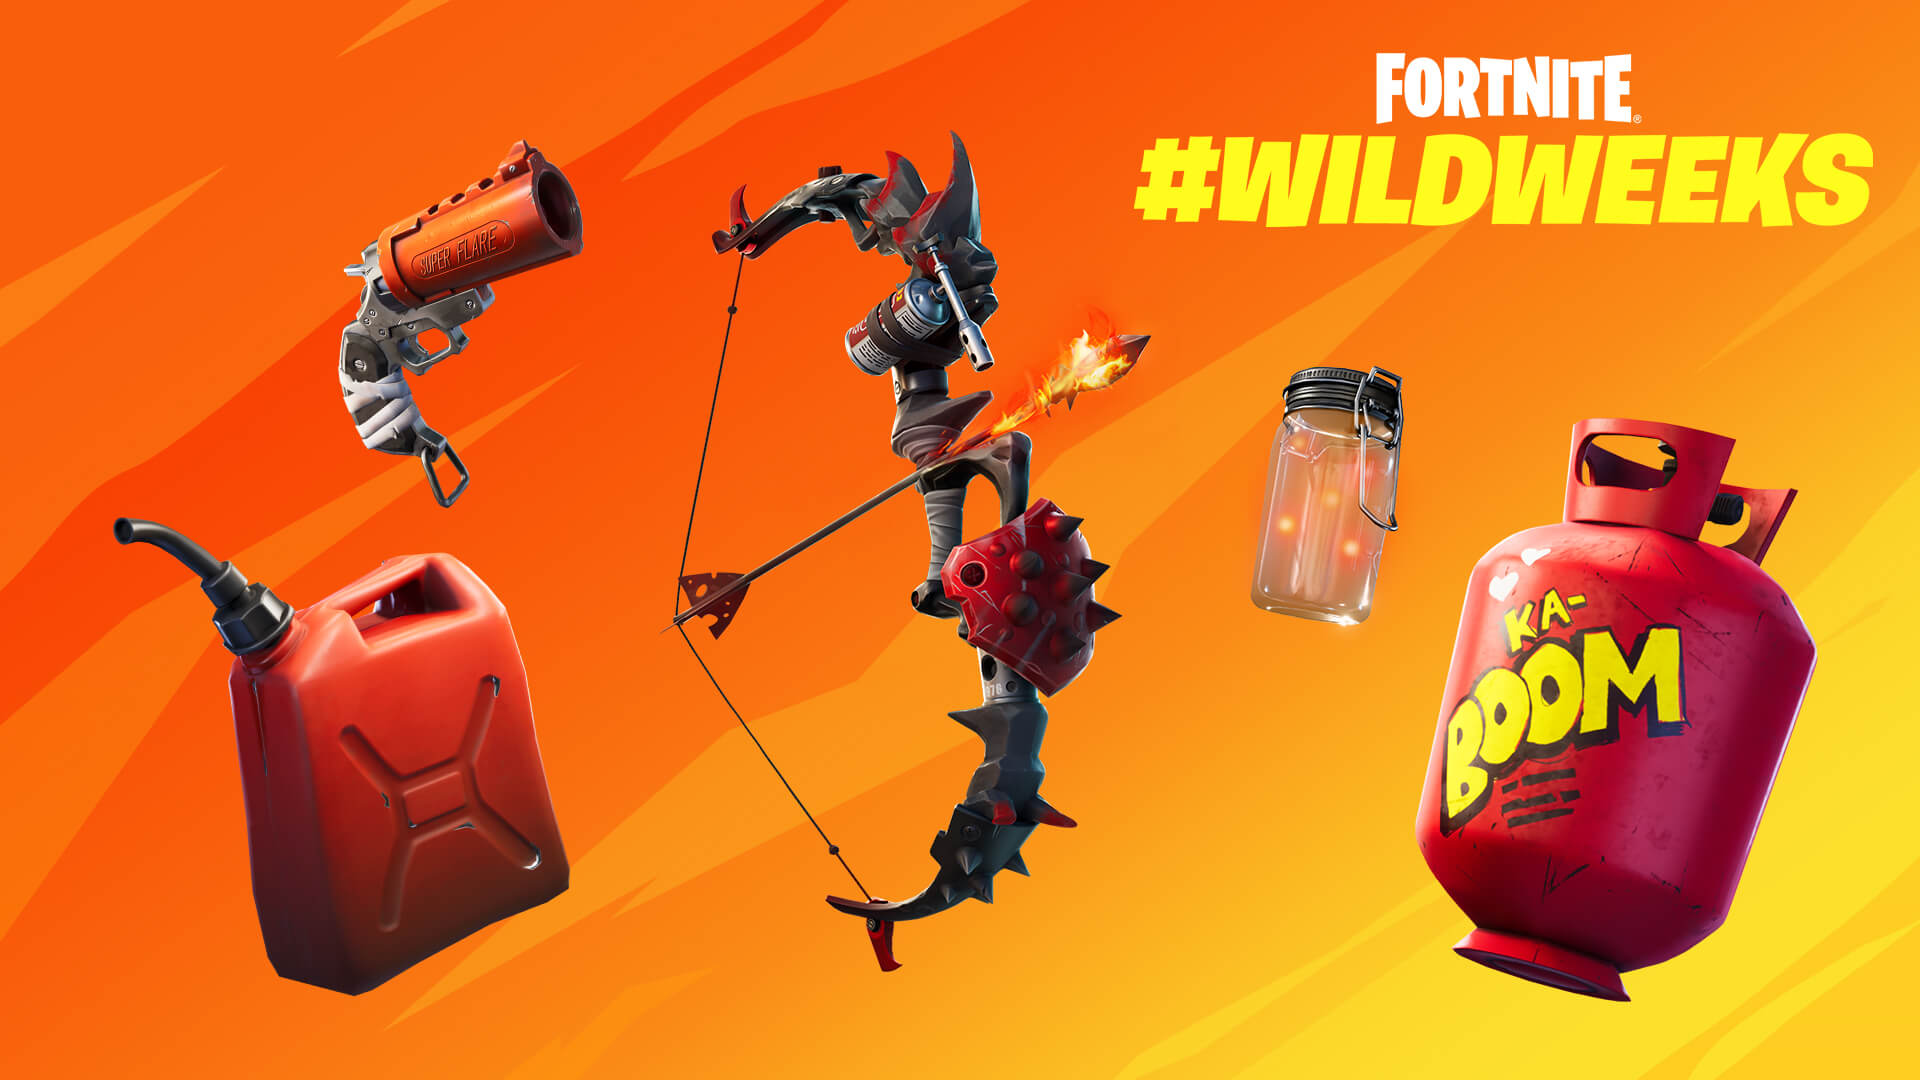 Fortnite Wild Weeks Fighting Fire with Fire